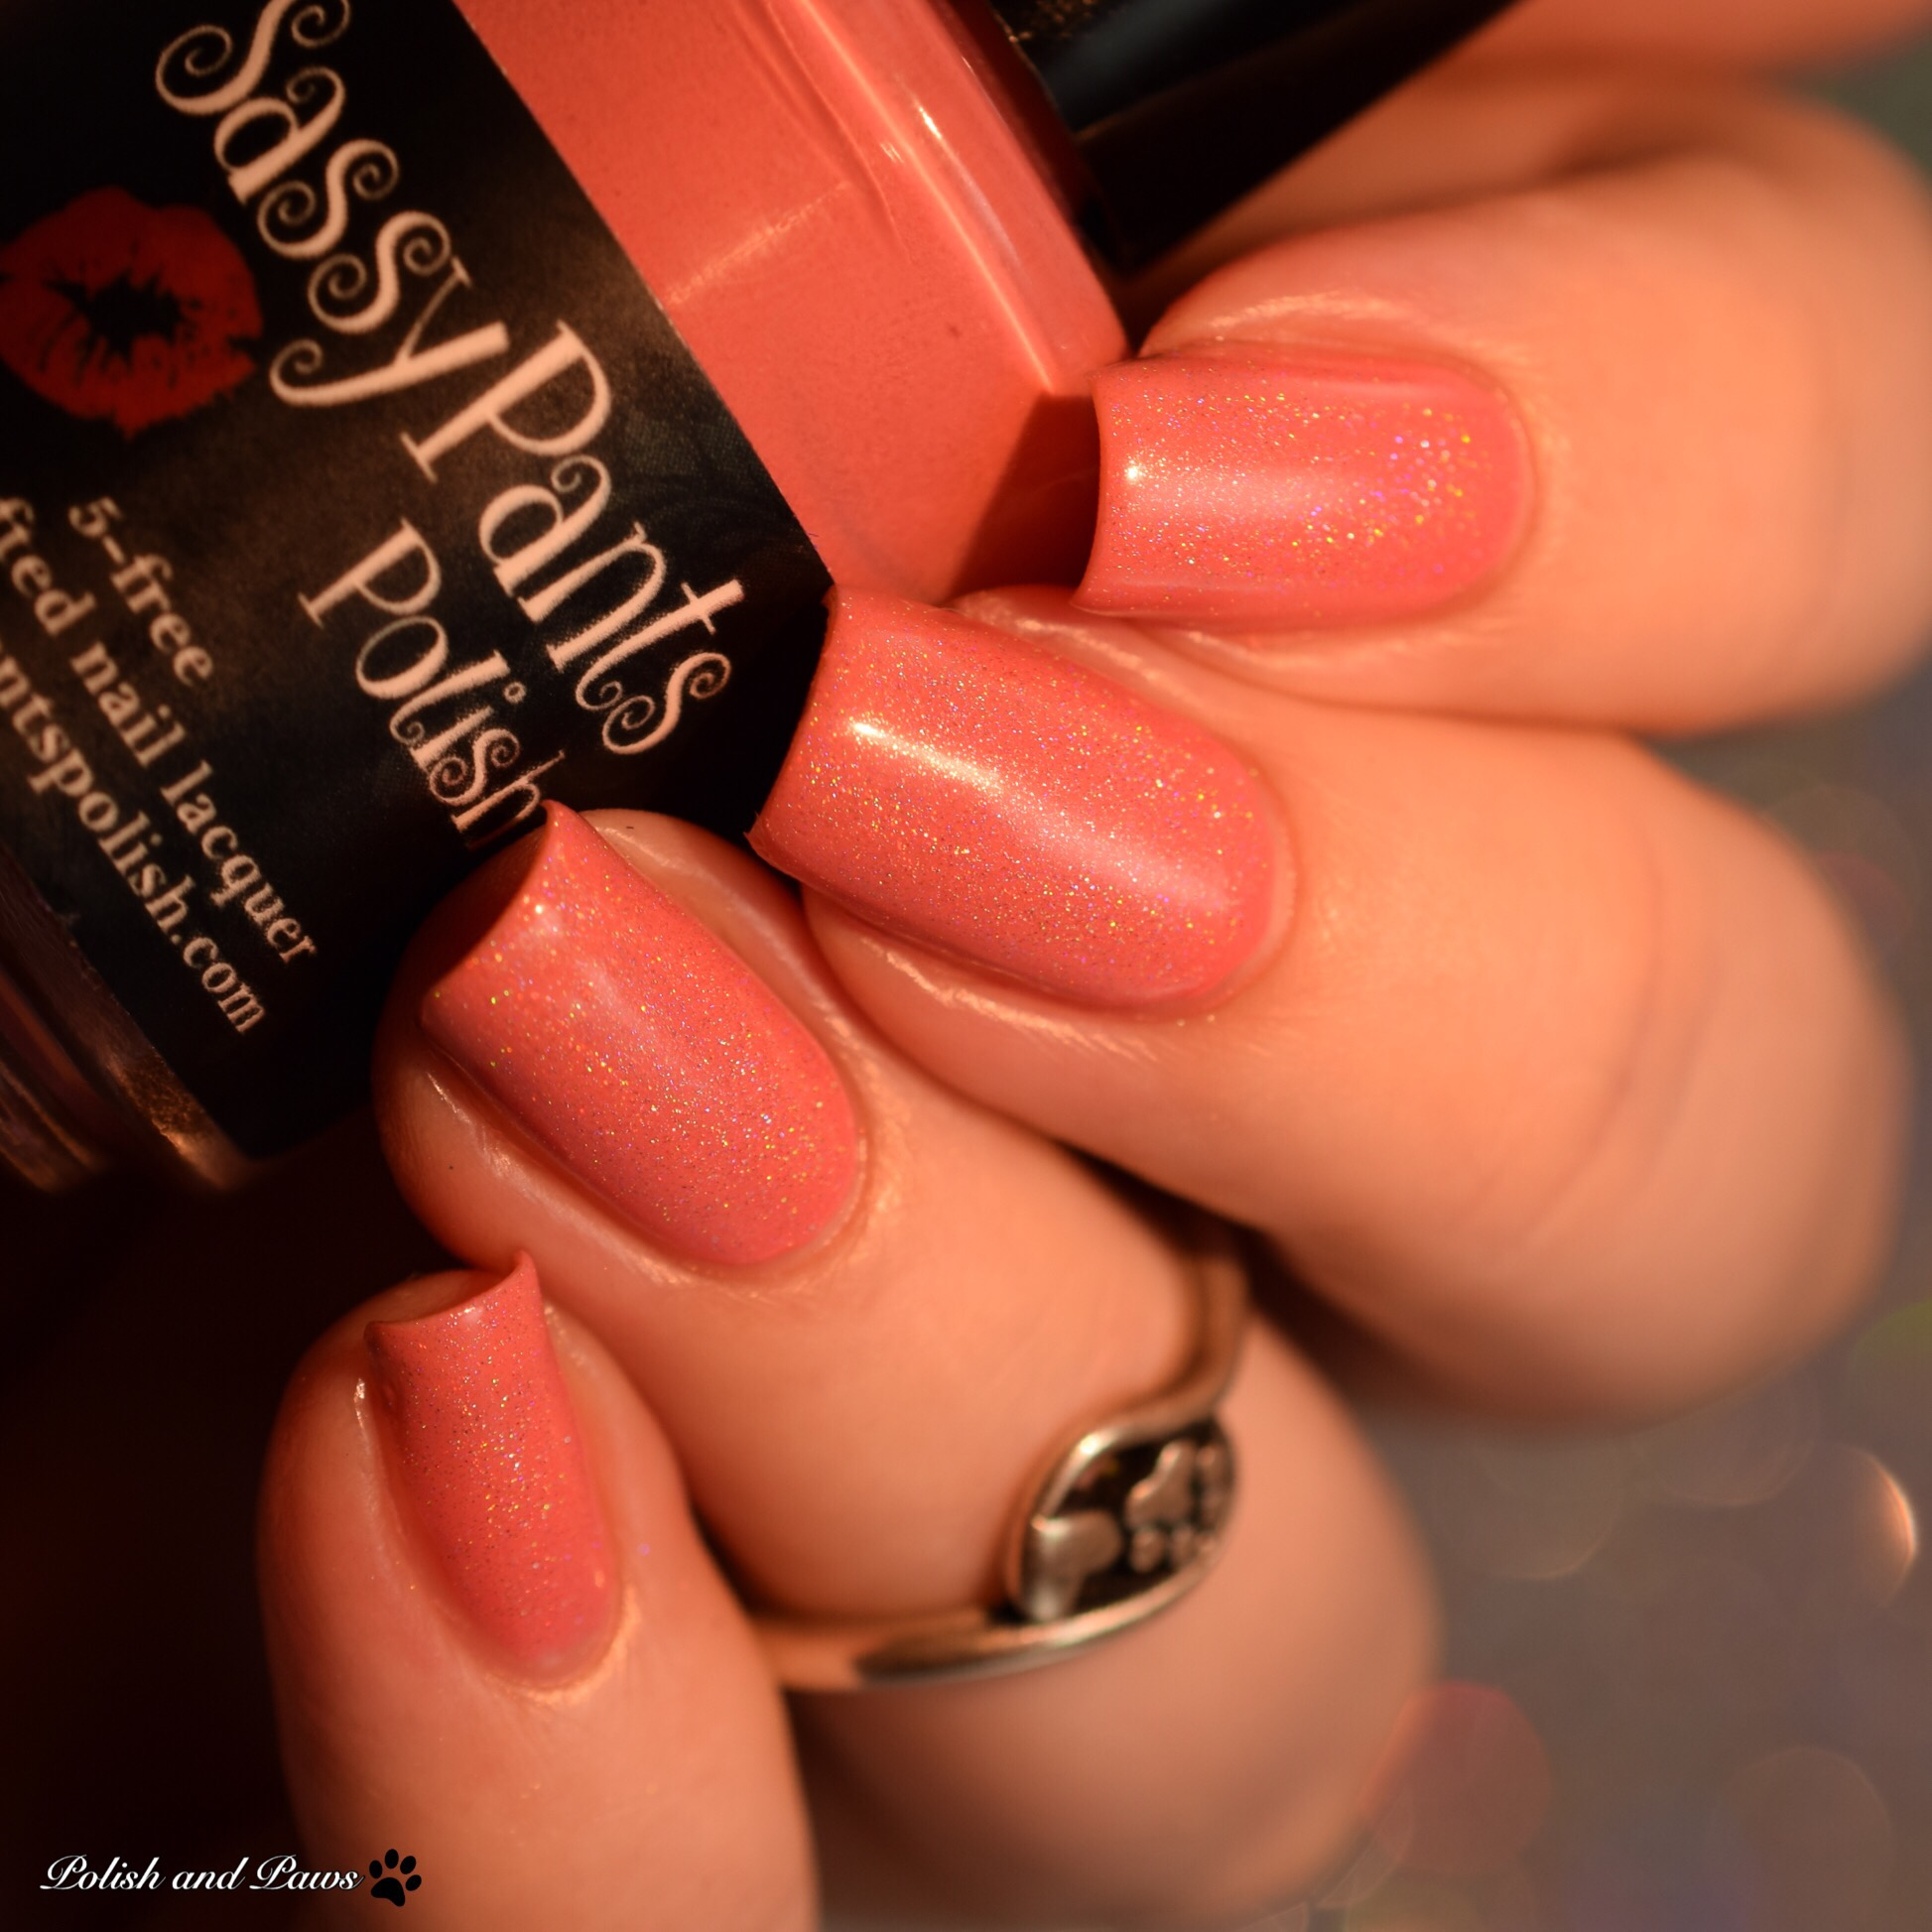 Sassy Pants Polish Love Always layered over French Kiss